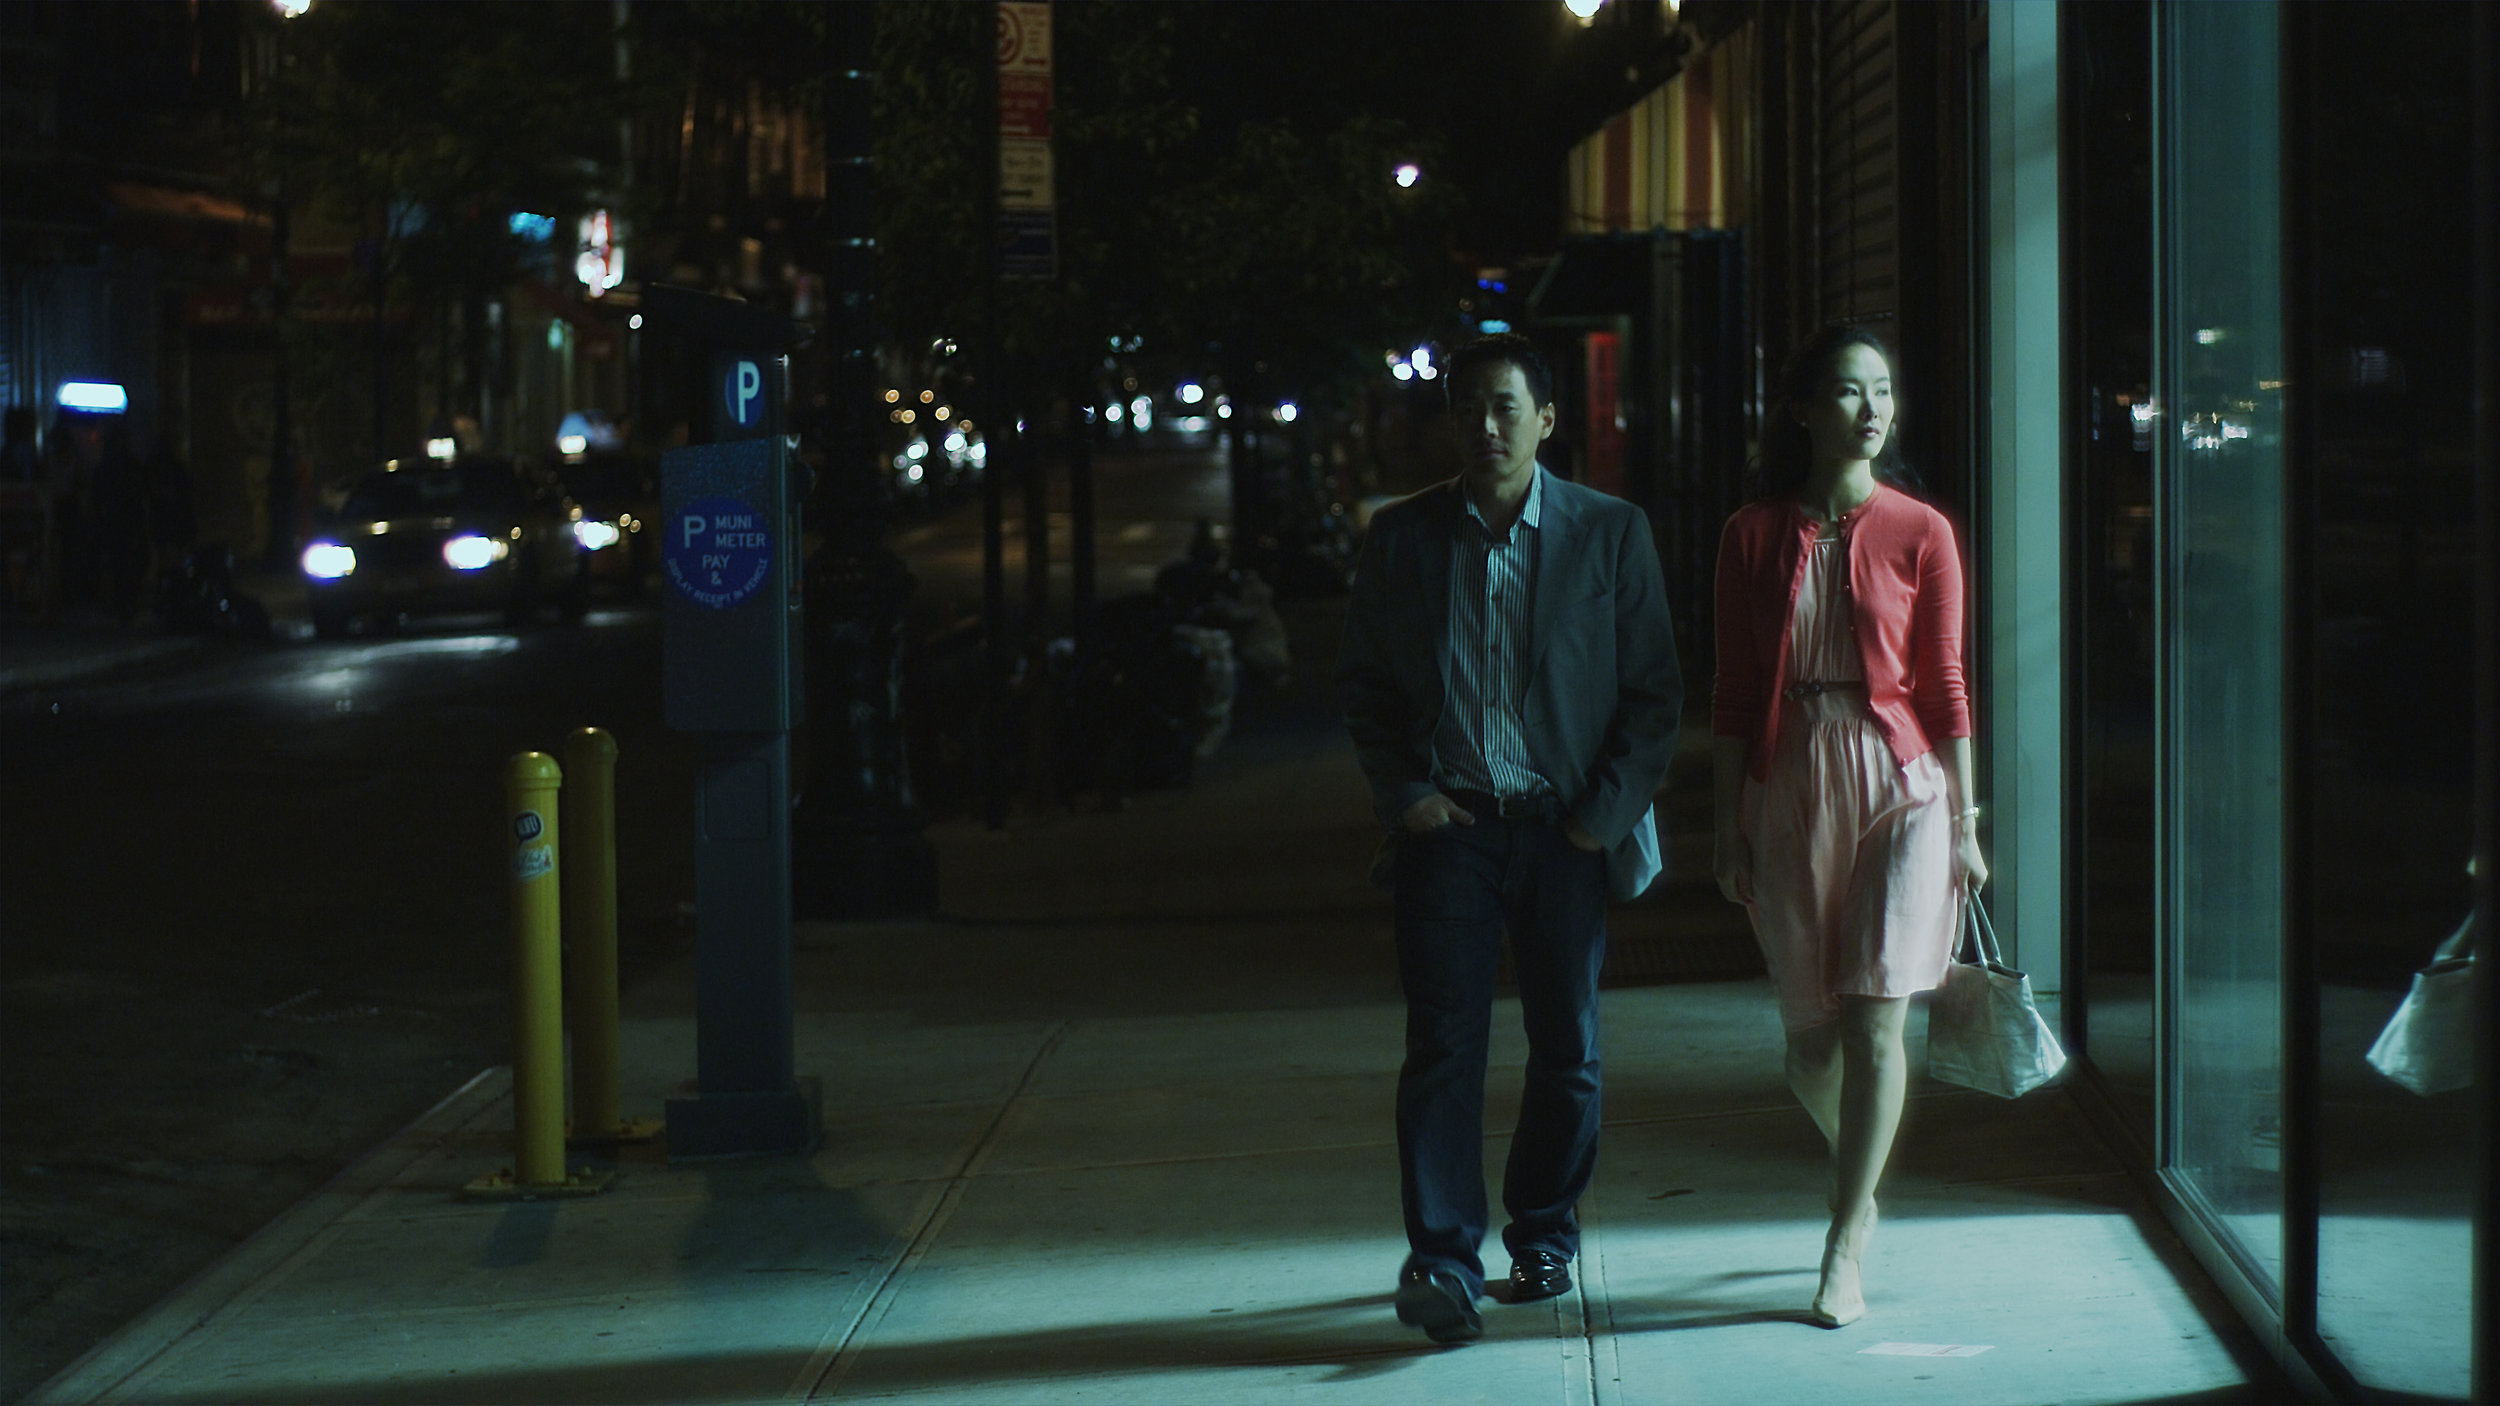 Paul Juhn and Sara Kim in Works of Art; Written by Paul Juhn; Cinematographer - Ramsey Fendall; Director - Andrew Pang